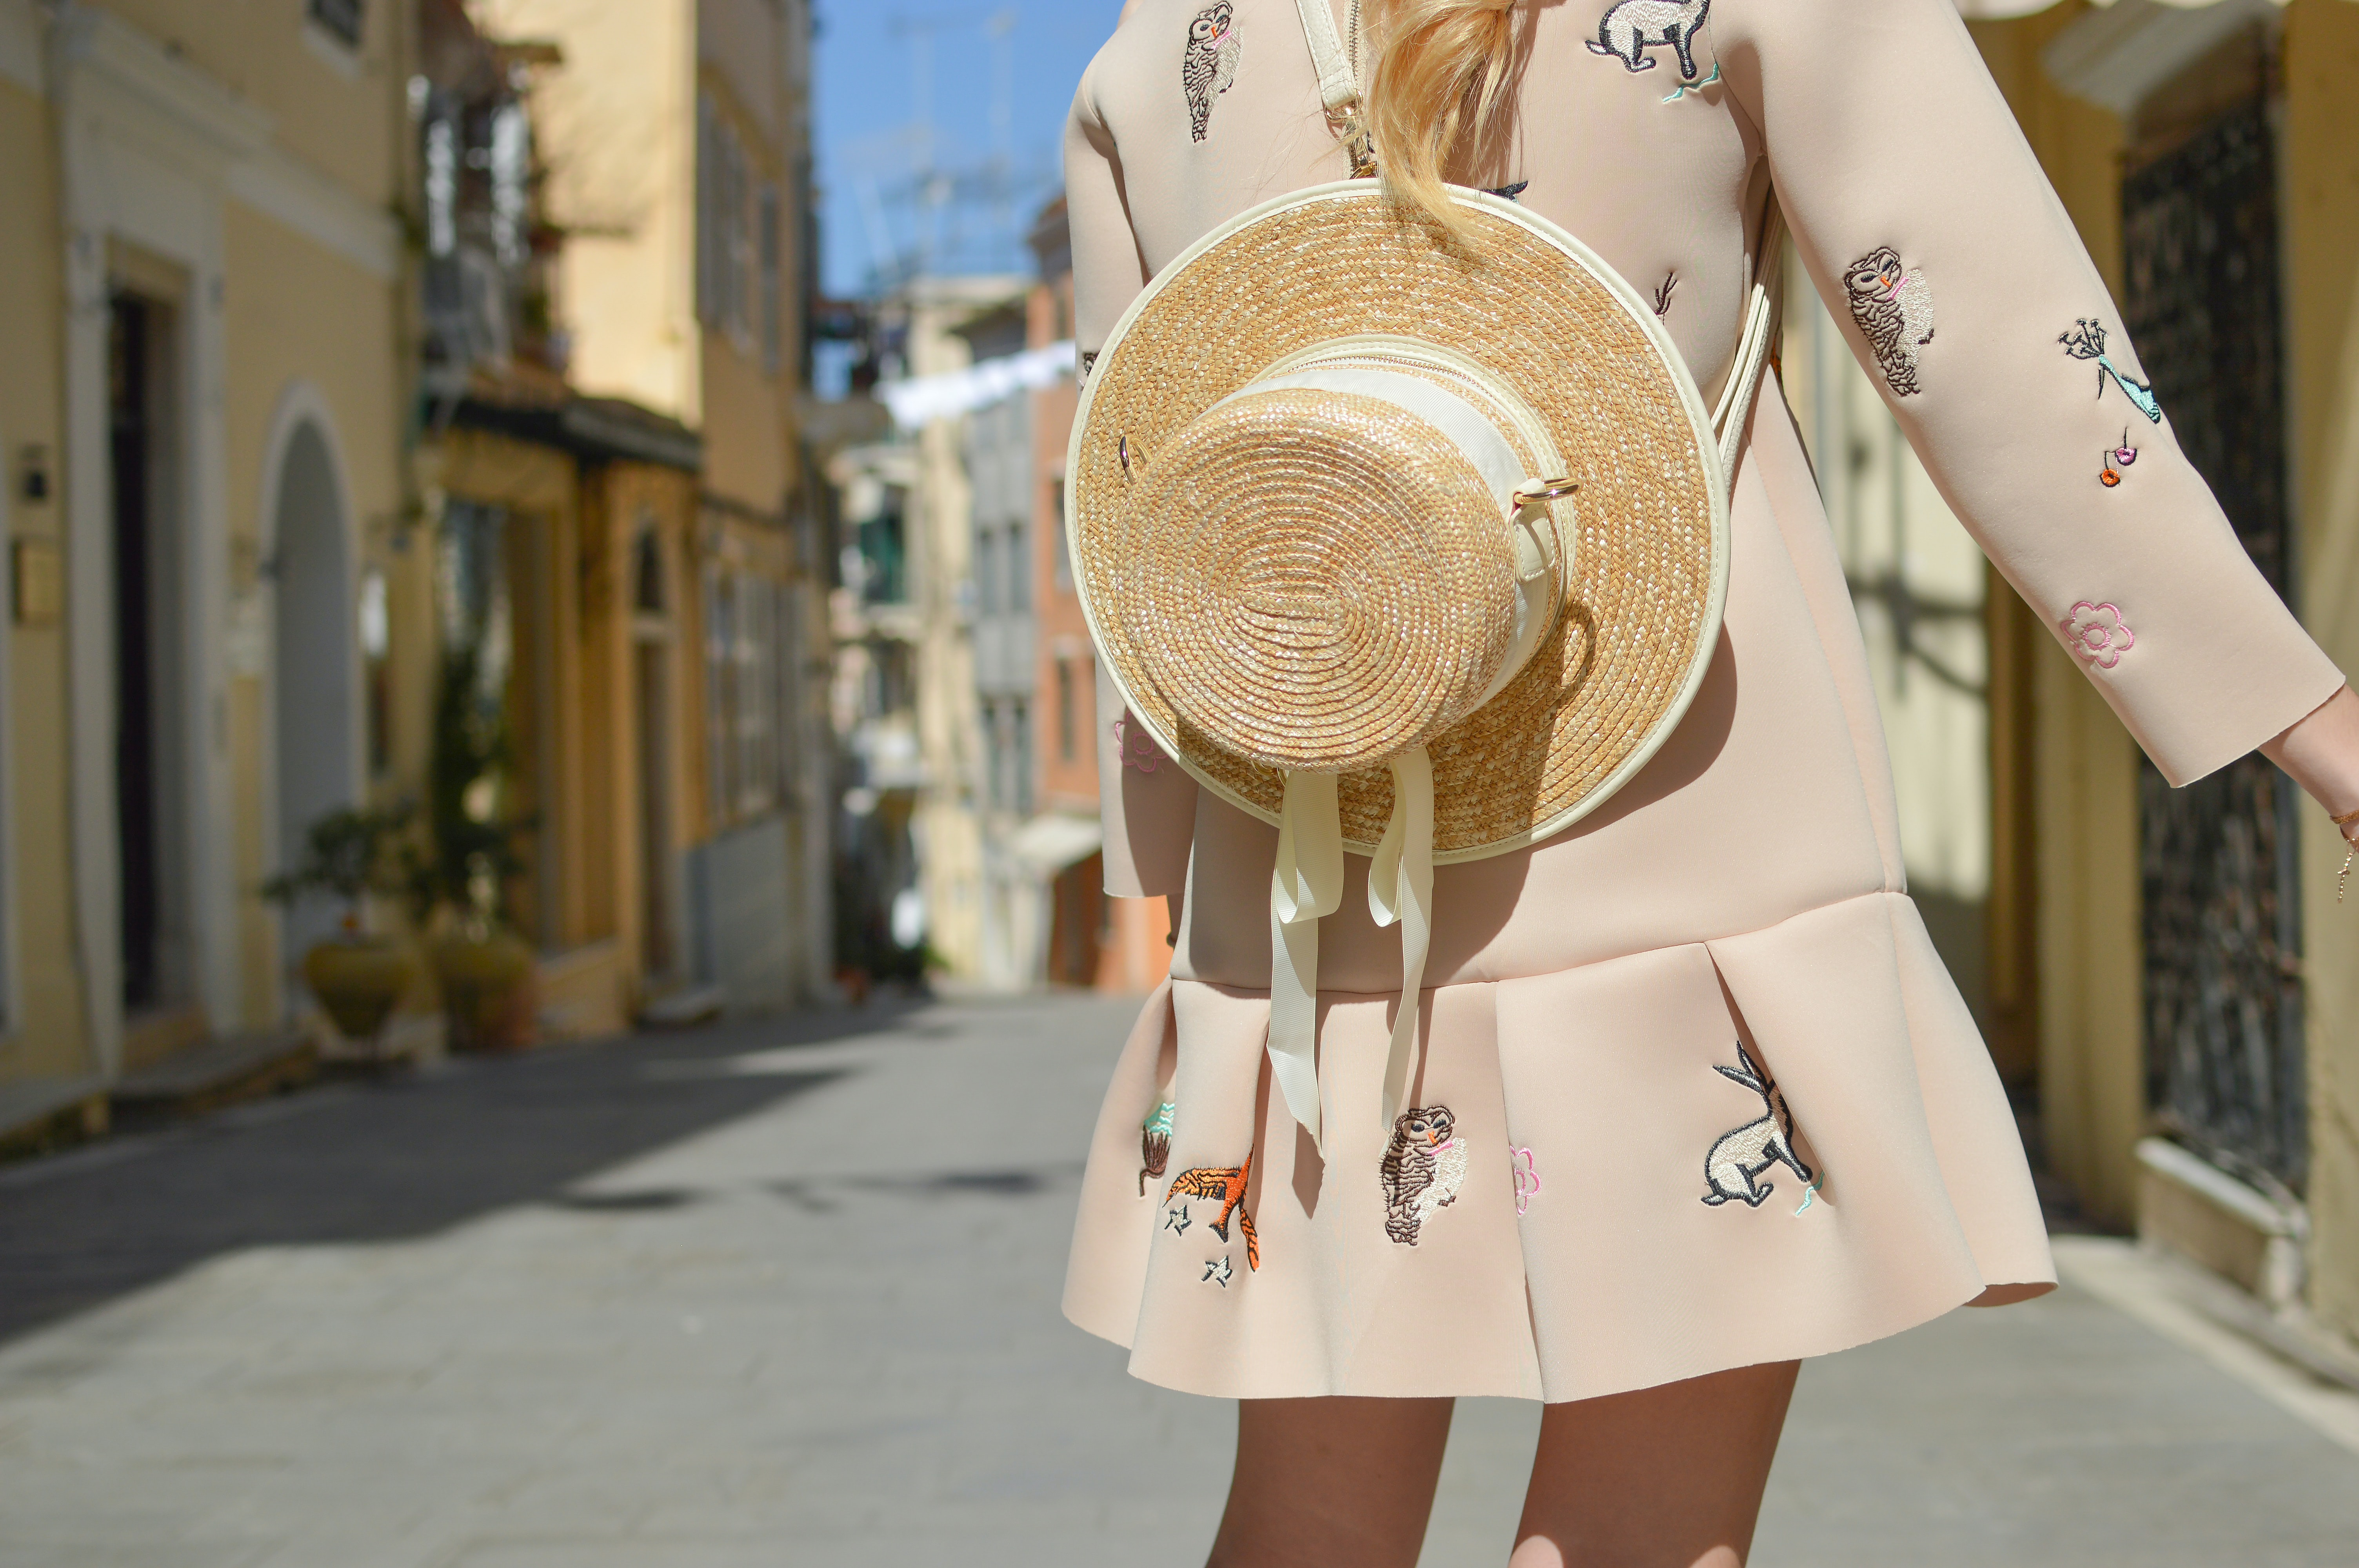 A woman in a pink dress with a straw hat hanging from her back in Corfu